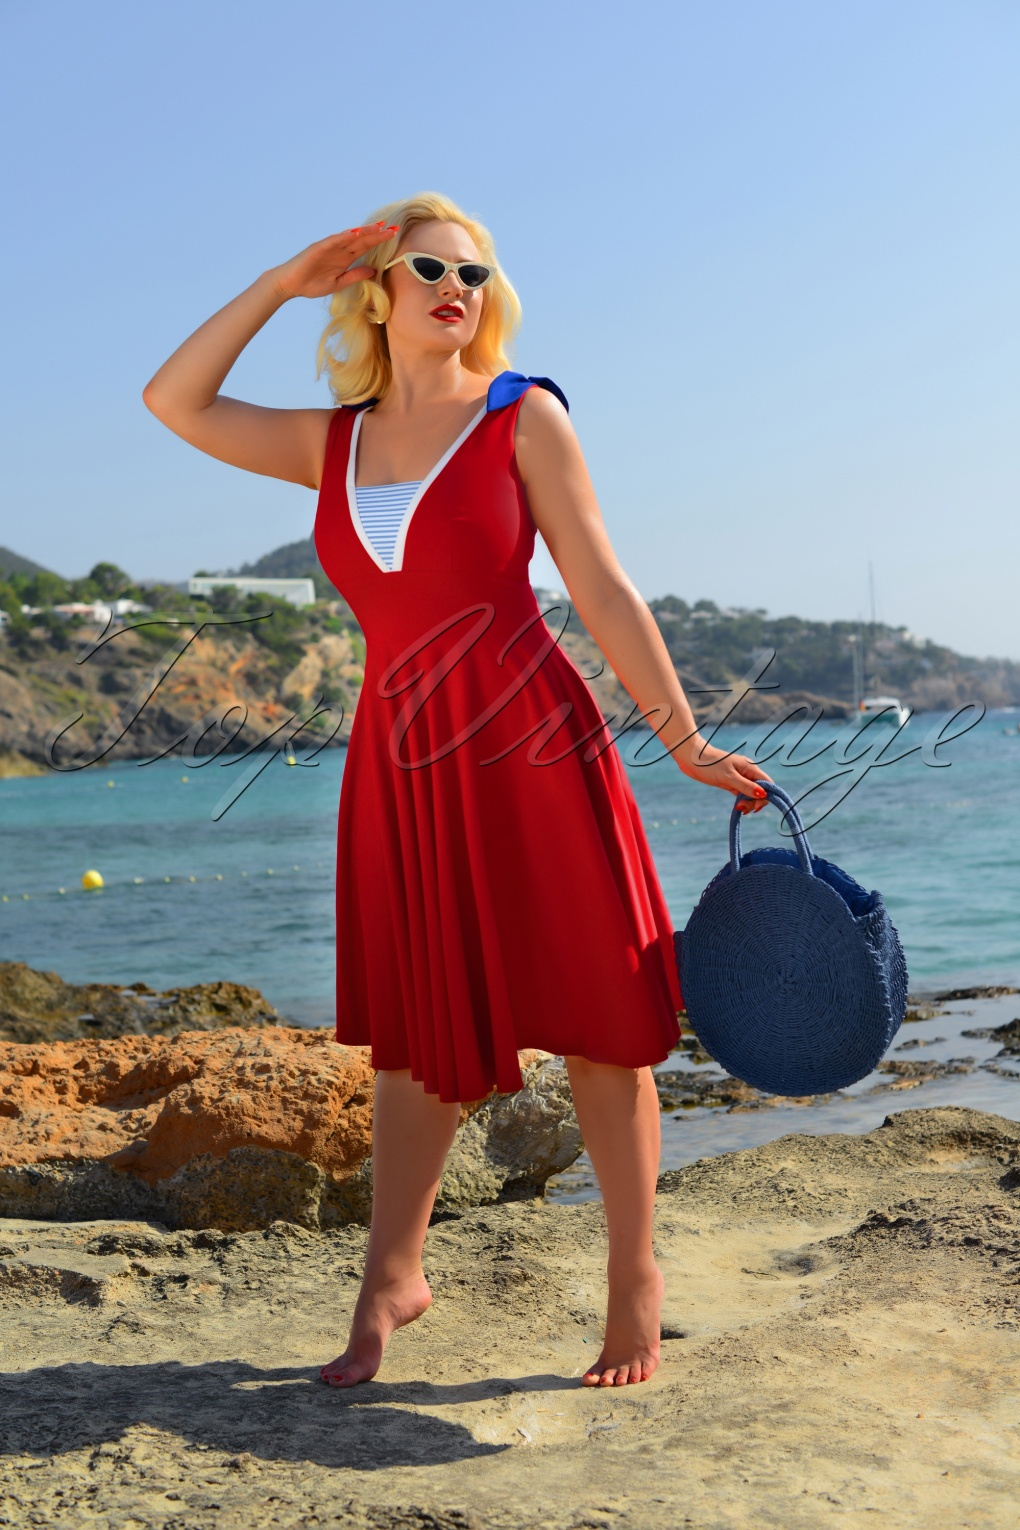 Sailor Dresses, Nautical Theme Dress, WW2 Dresses 50s Gerry Sailor Swing Dress in Red £124.92 AT vintagedancer.com